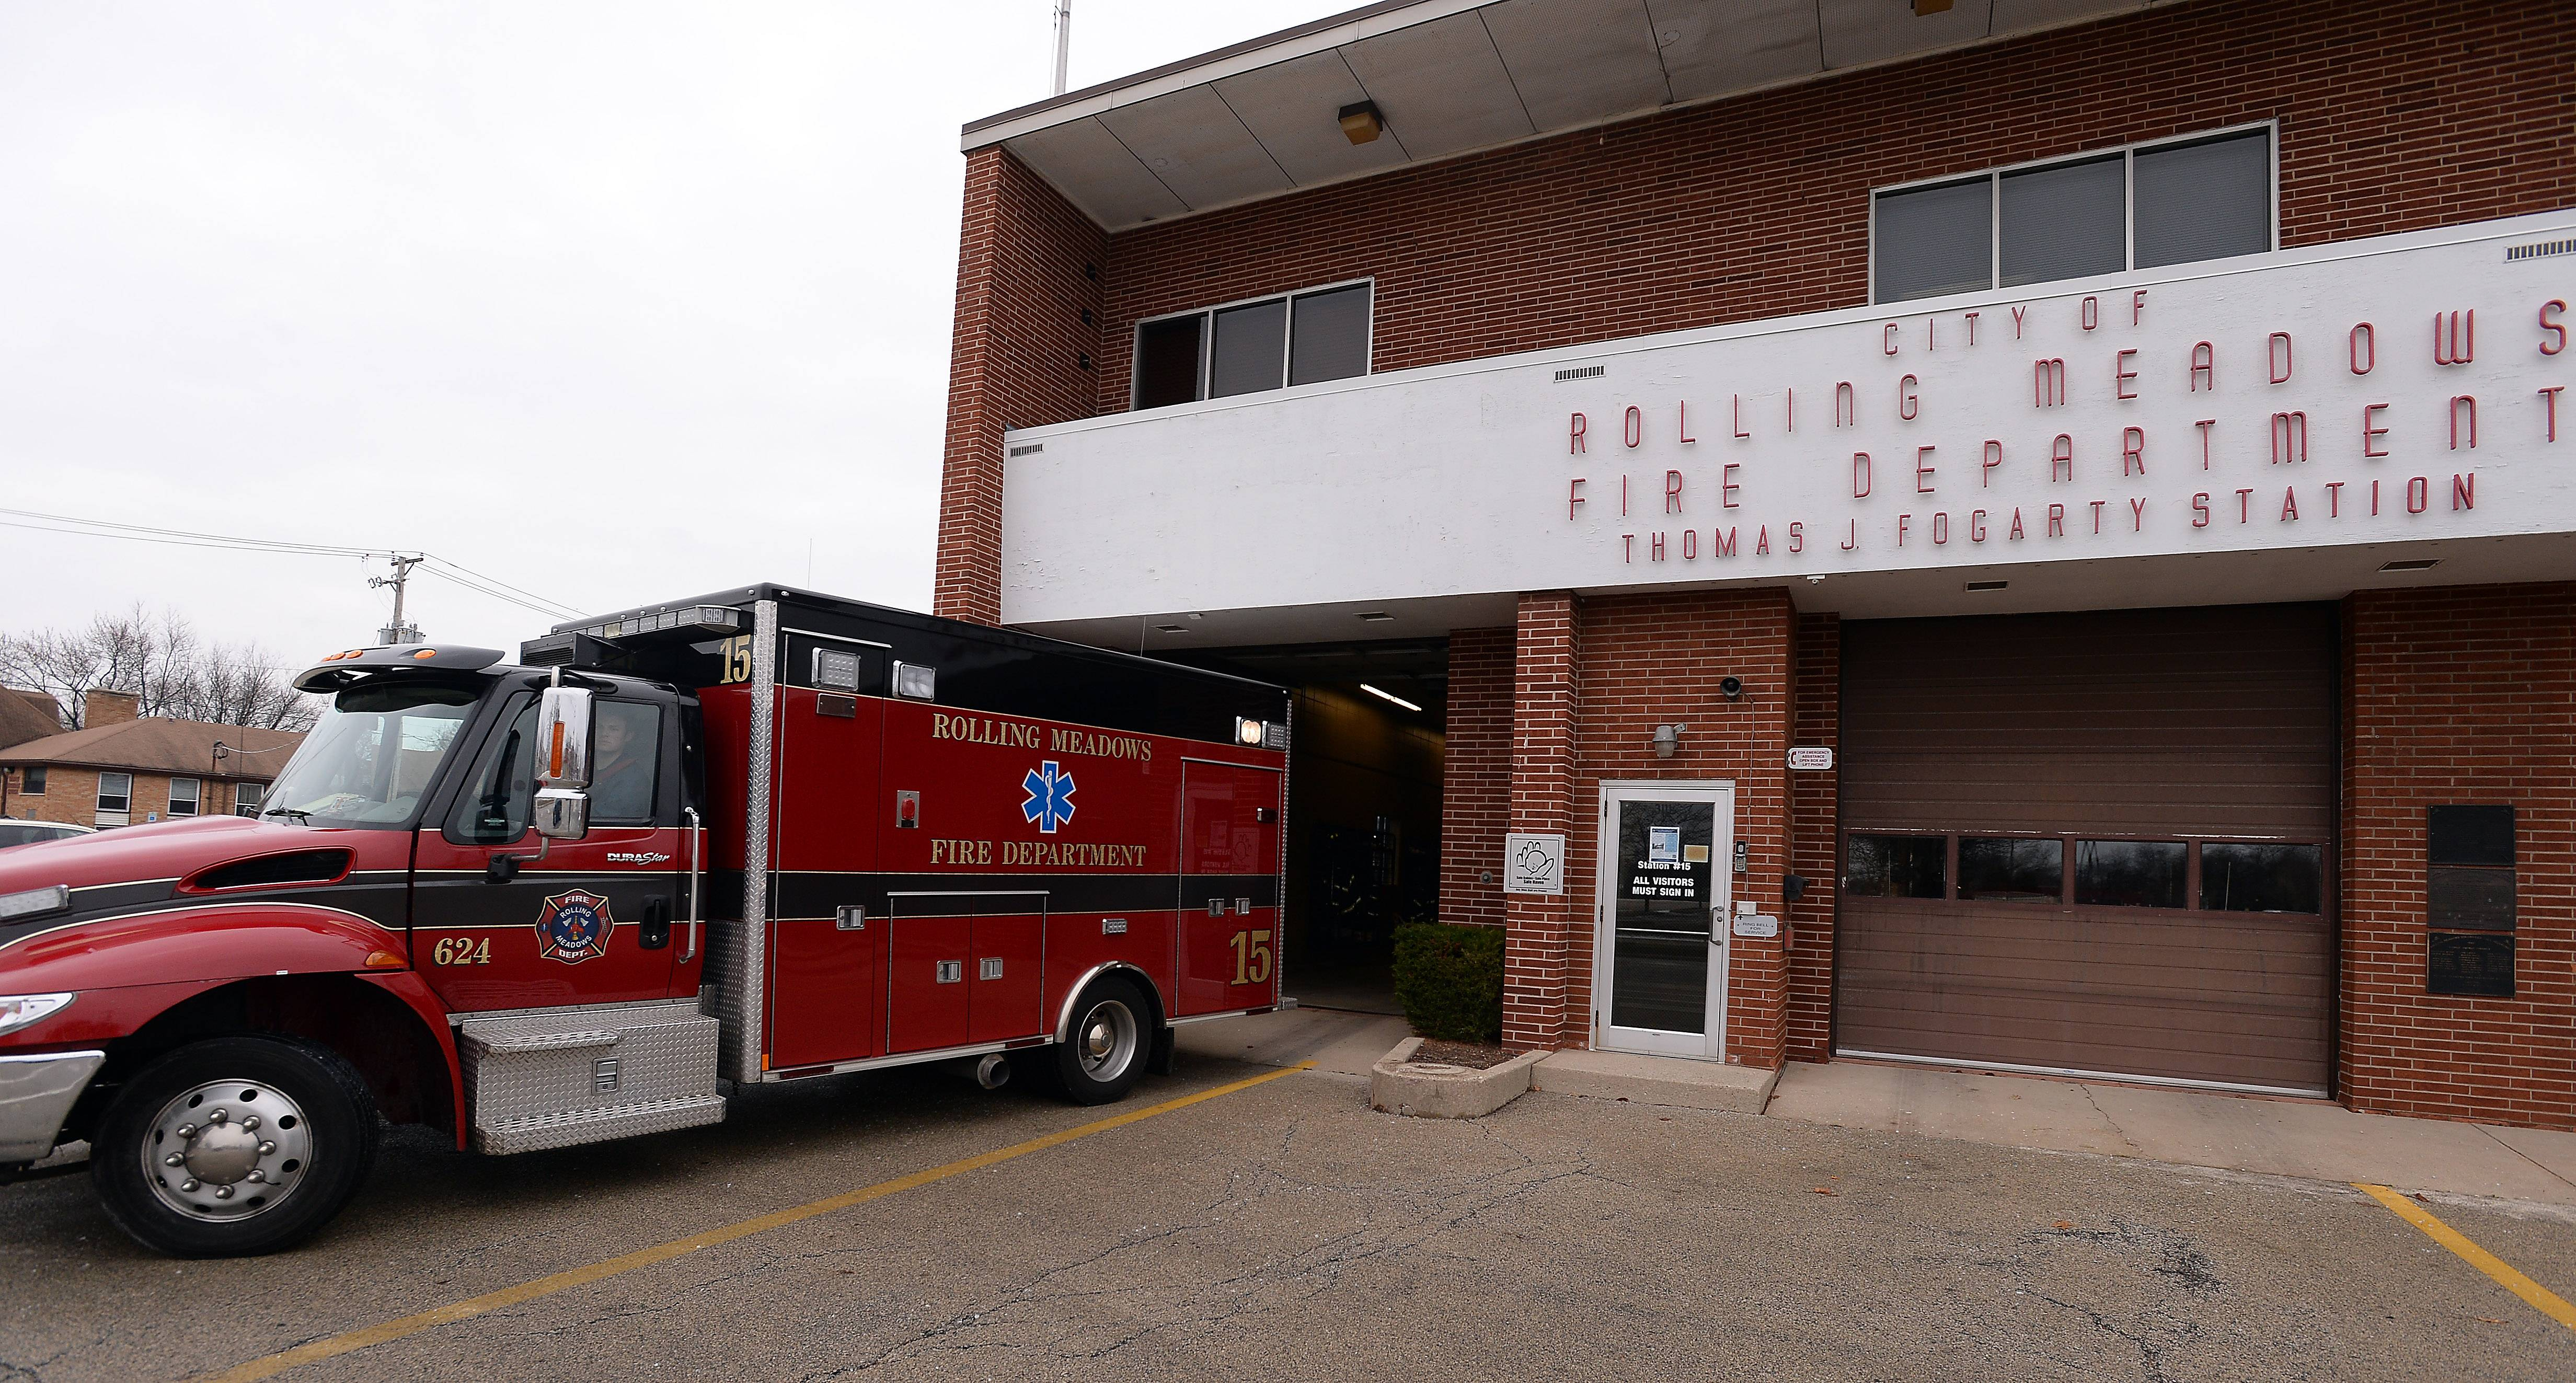 This Rolling Meadows fire station was built in 1958 and was named for the long-time fire chief, from 1958 and 1977.